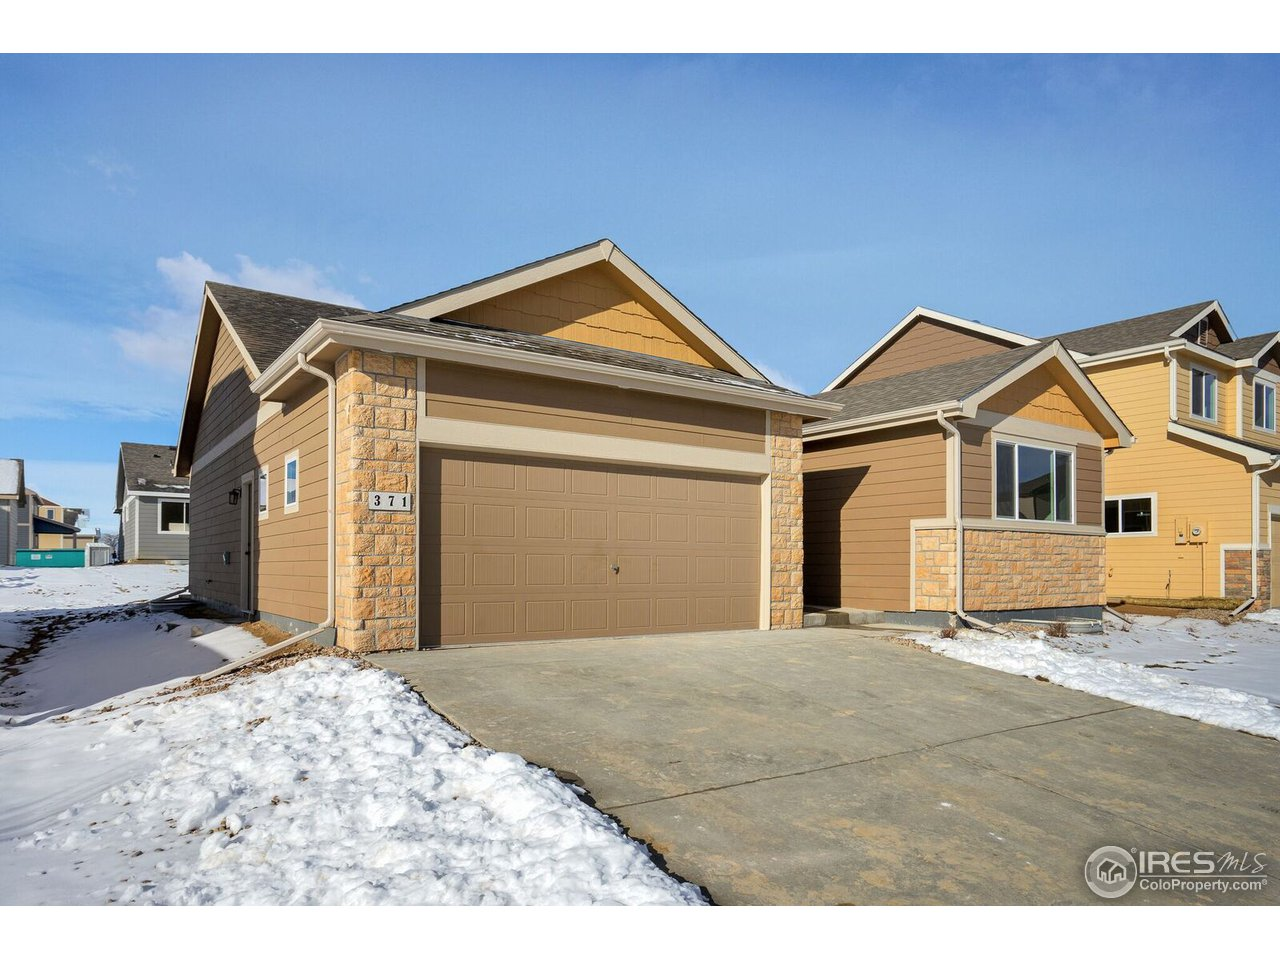 8804 15th St Rd, Greeley CO 80634